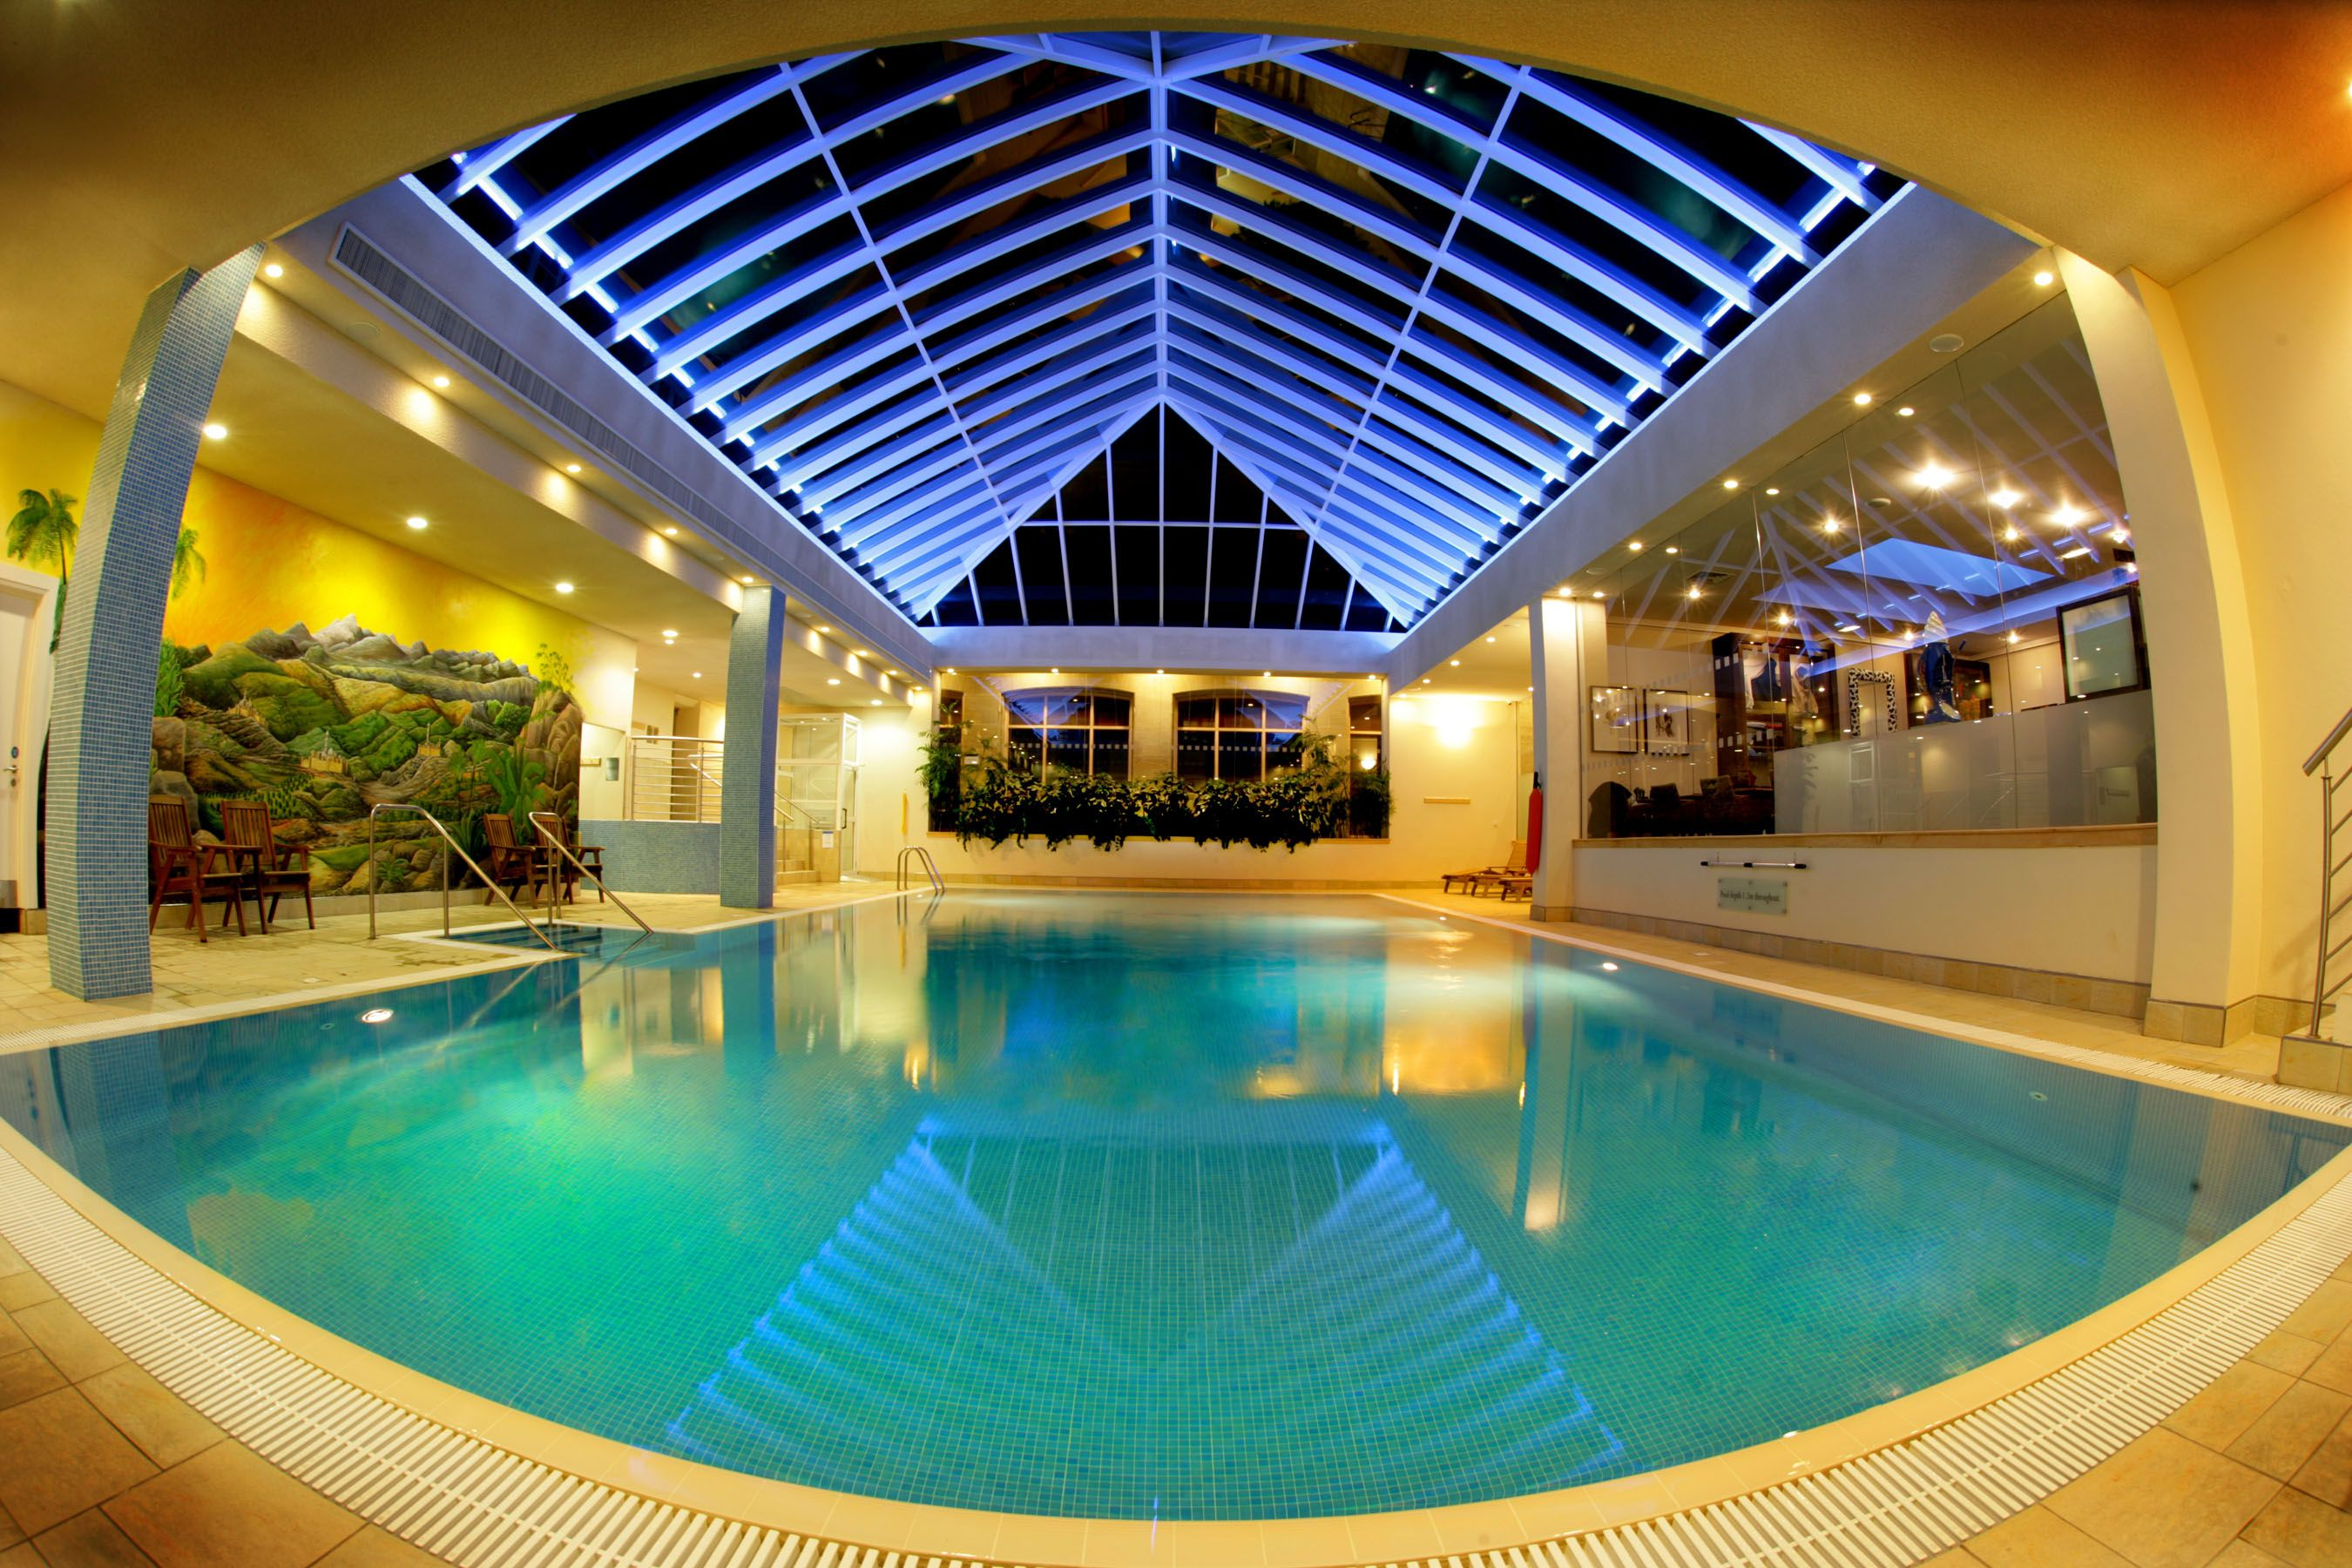 top 25 ideas to complete your home with indoor swimming pool - Cool House Indoor Pools